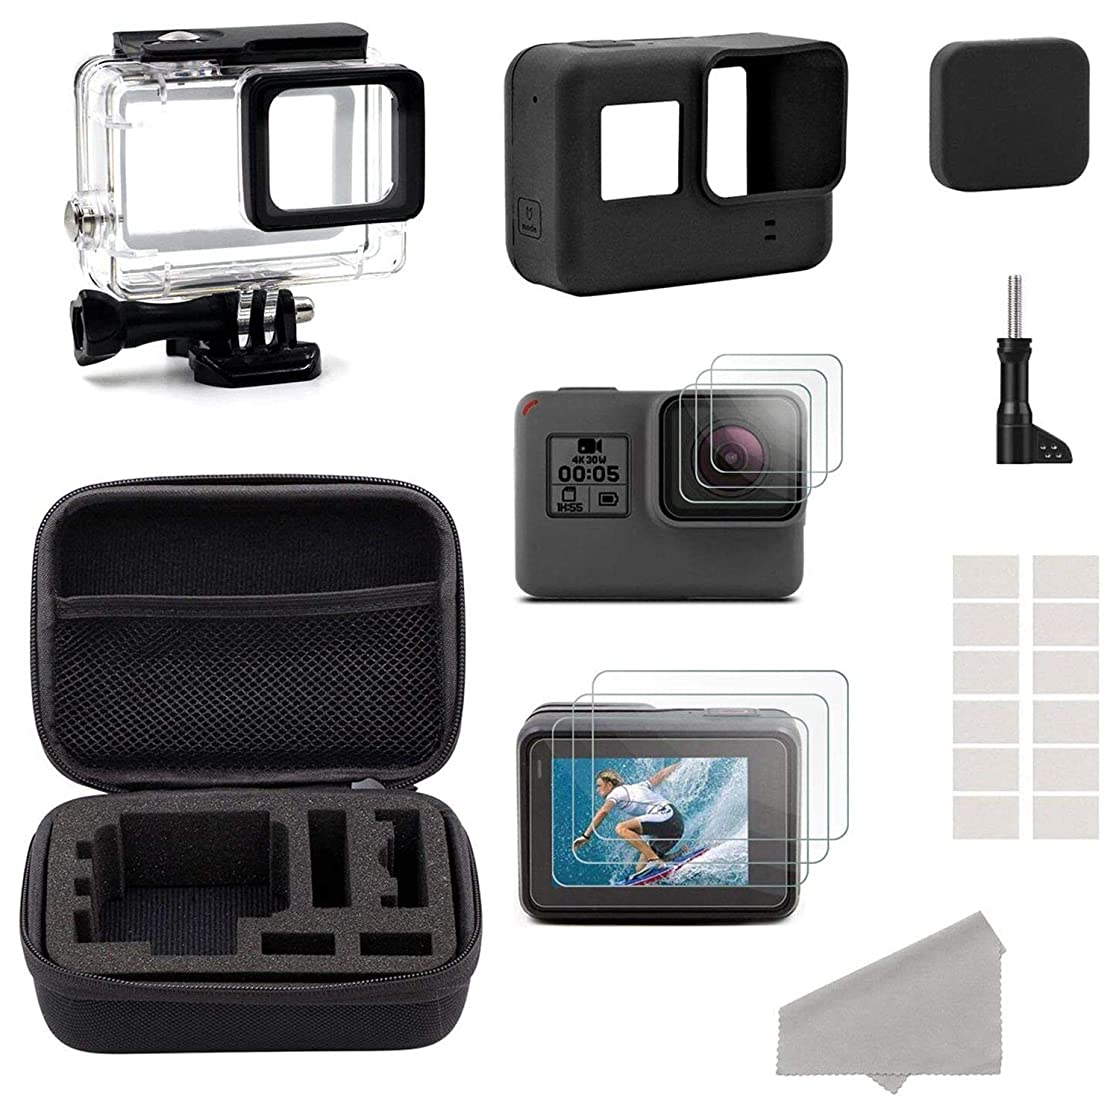 Semoic Accessories for GoPro Hero HD (2018) /6/5 Black Starter Kit Travel Case Small + Housing Case + Screen Protector + Lens Cover + Silicone Protective Case